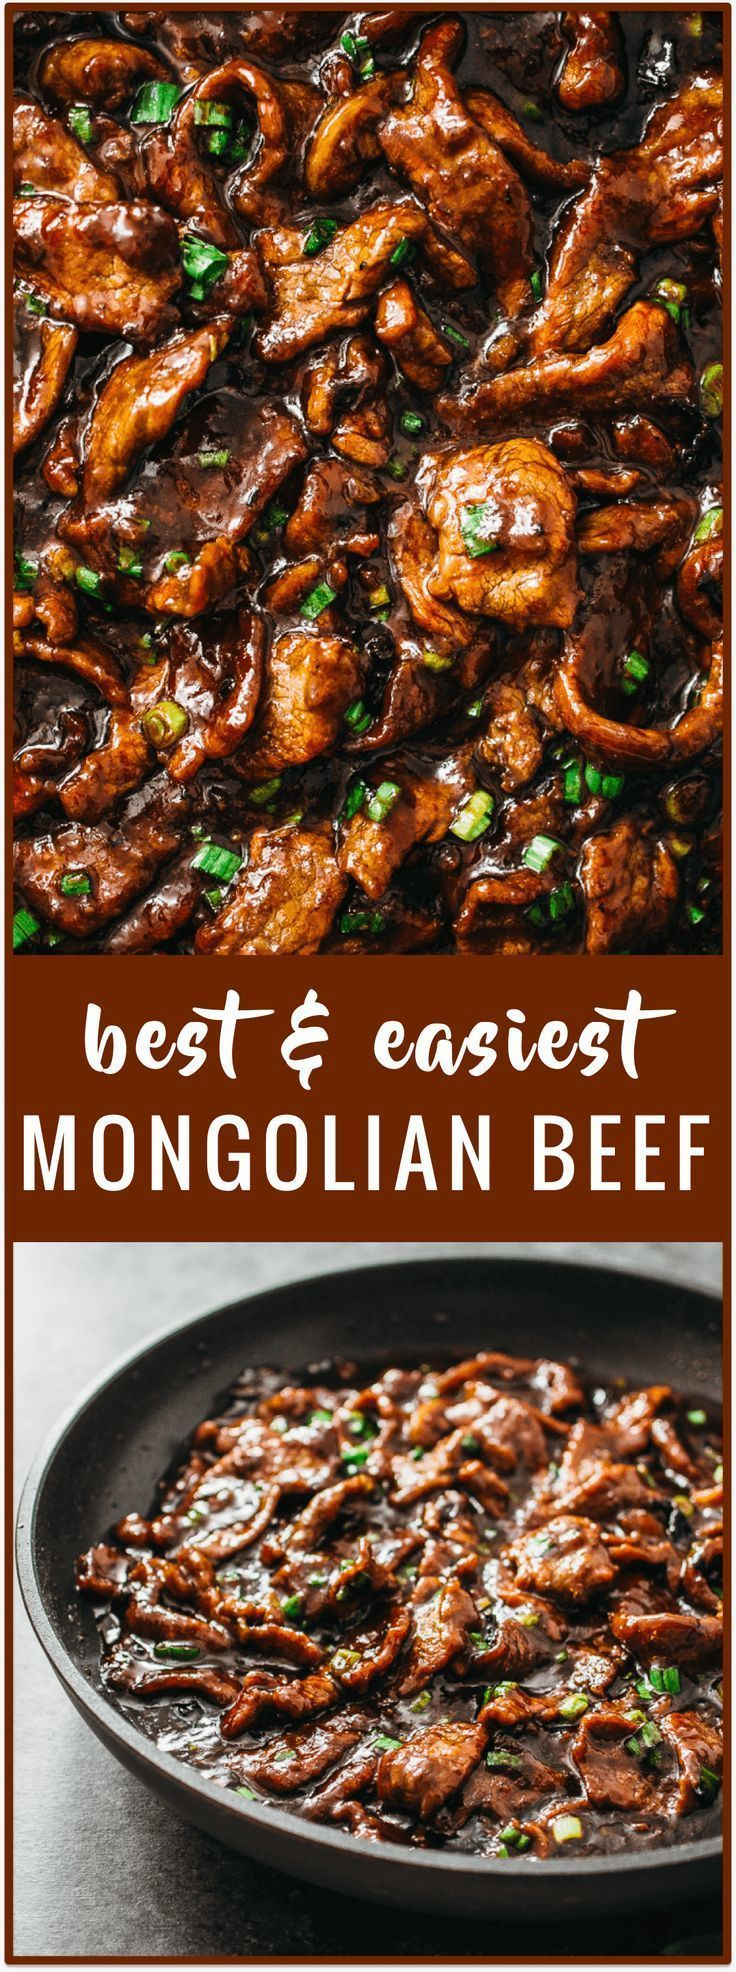 authentic easiest mongolian beef - Mongolian beef is an easy and fast 15-minute stir-fry recipe with tender beef slices and a bold sticky sauce with a hint of spiciness. It's served with steamed rice or noodles.